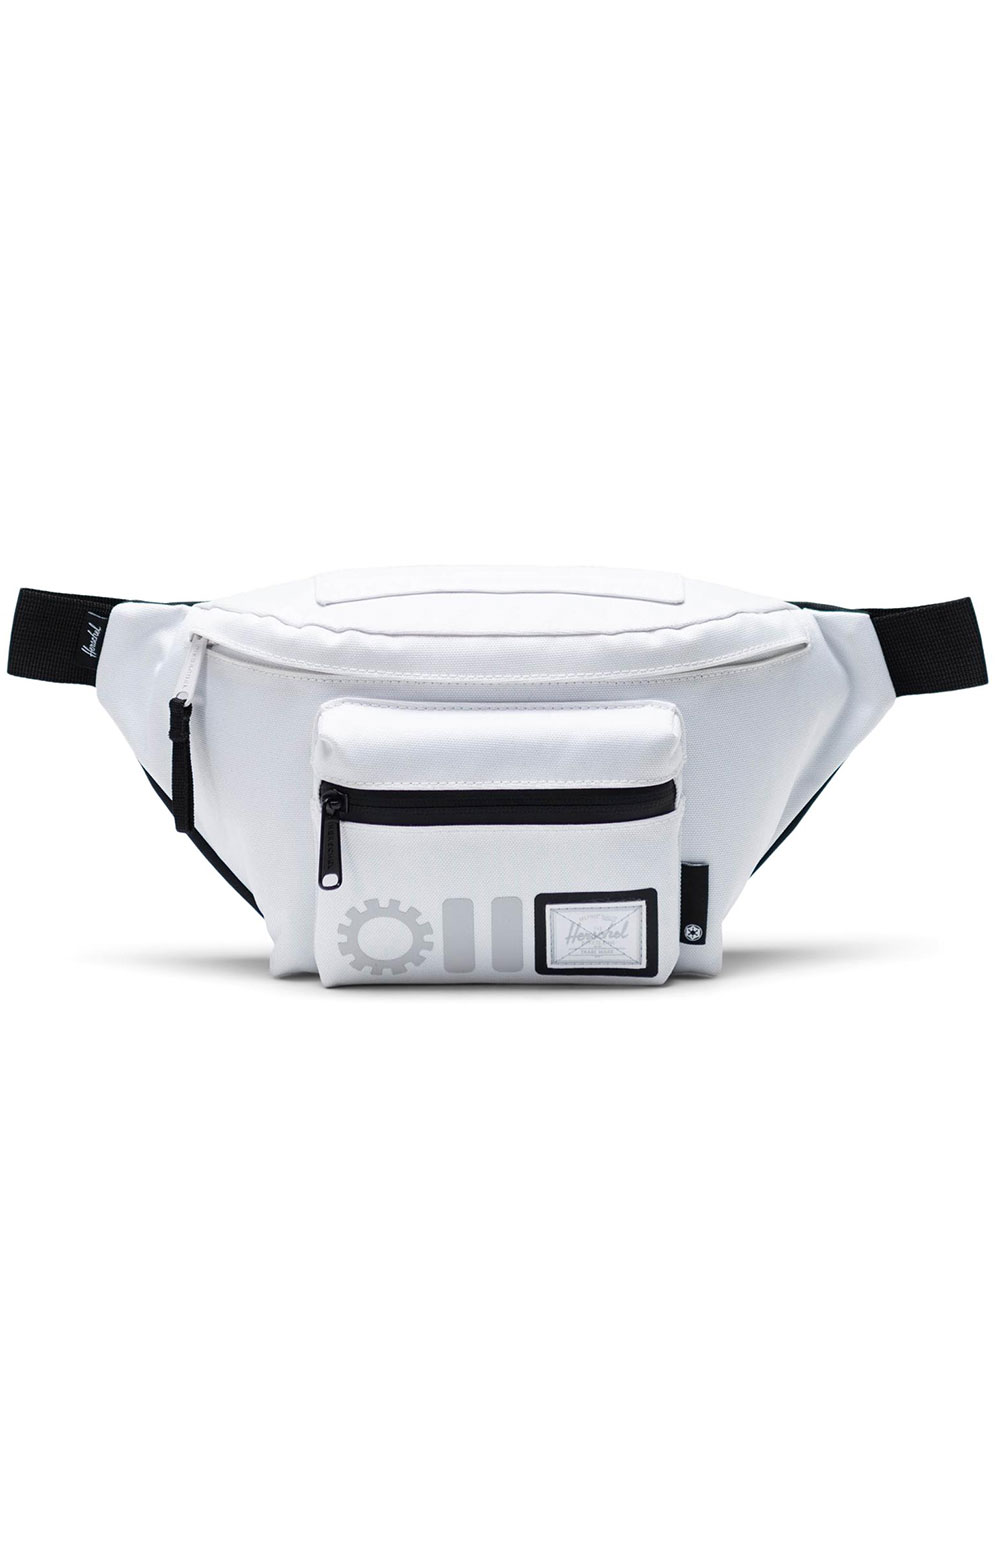 Seventeen Fanny Pack - Stormtroopers